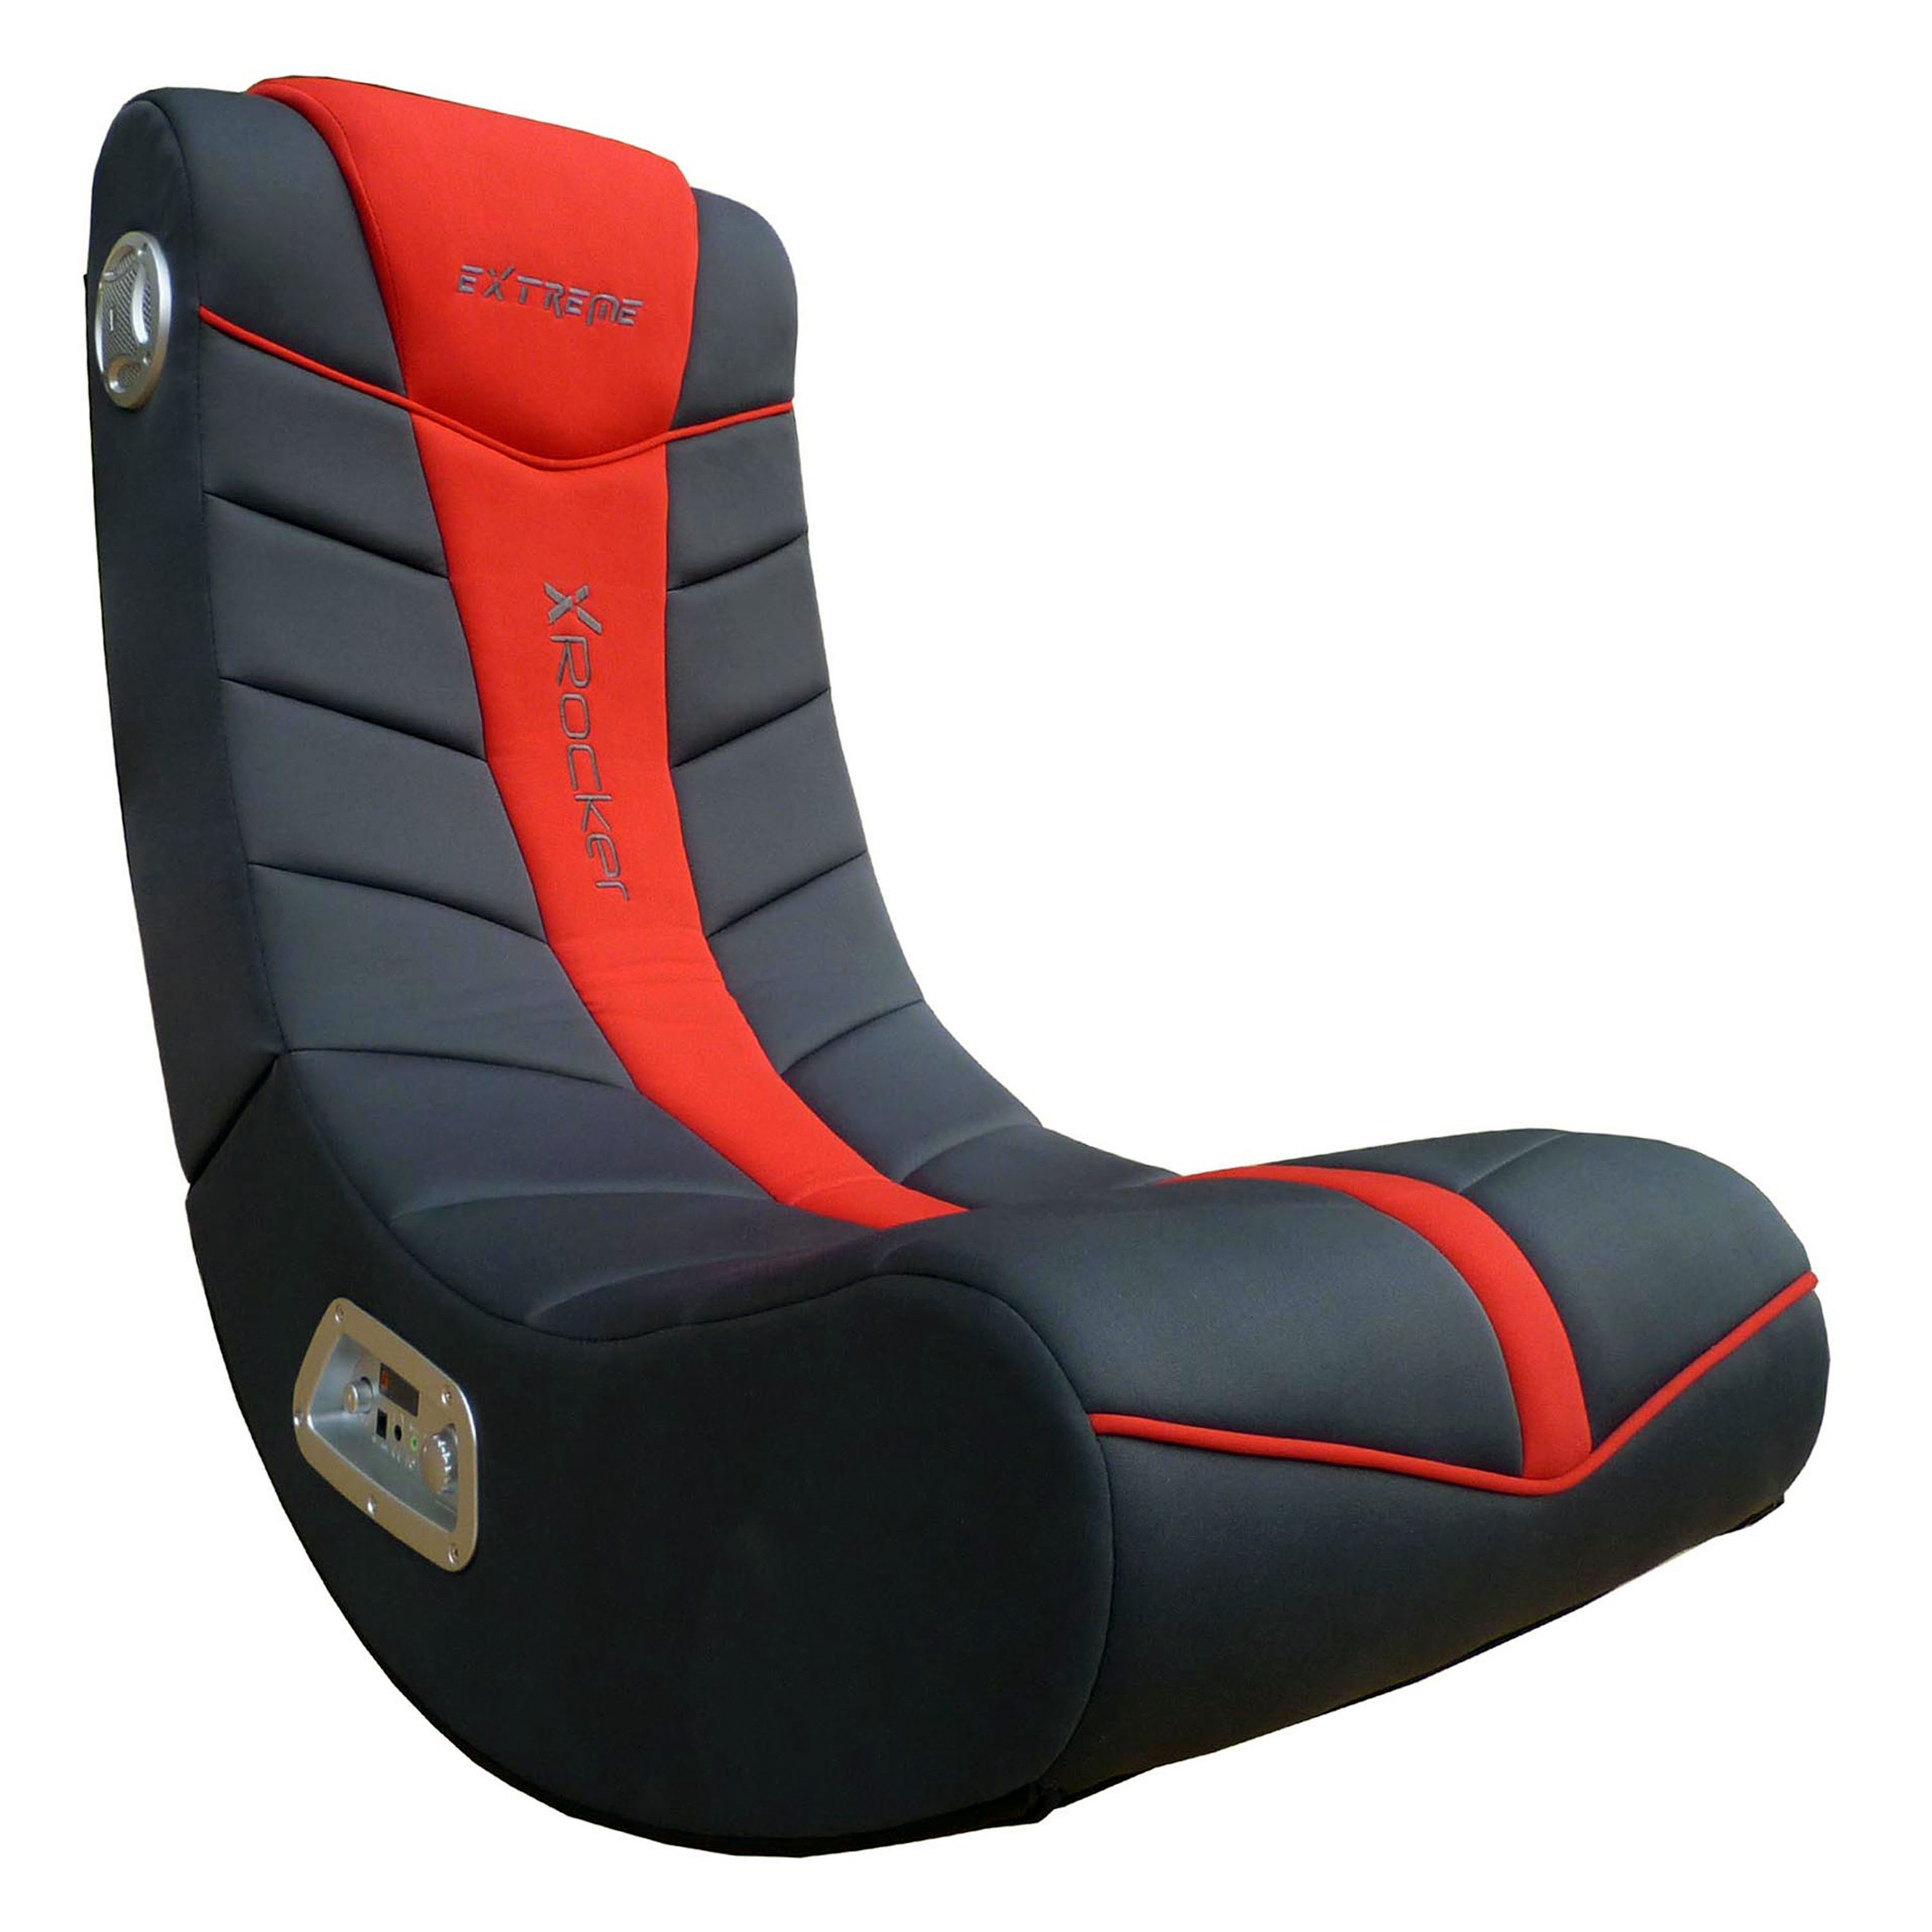 Game chairs for xbox 360 - Game Chairs For Xbox 360 11